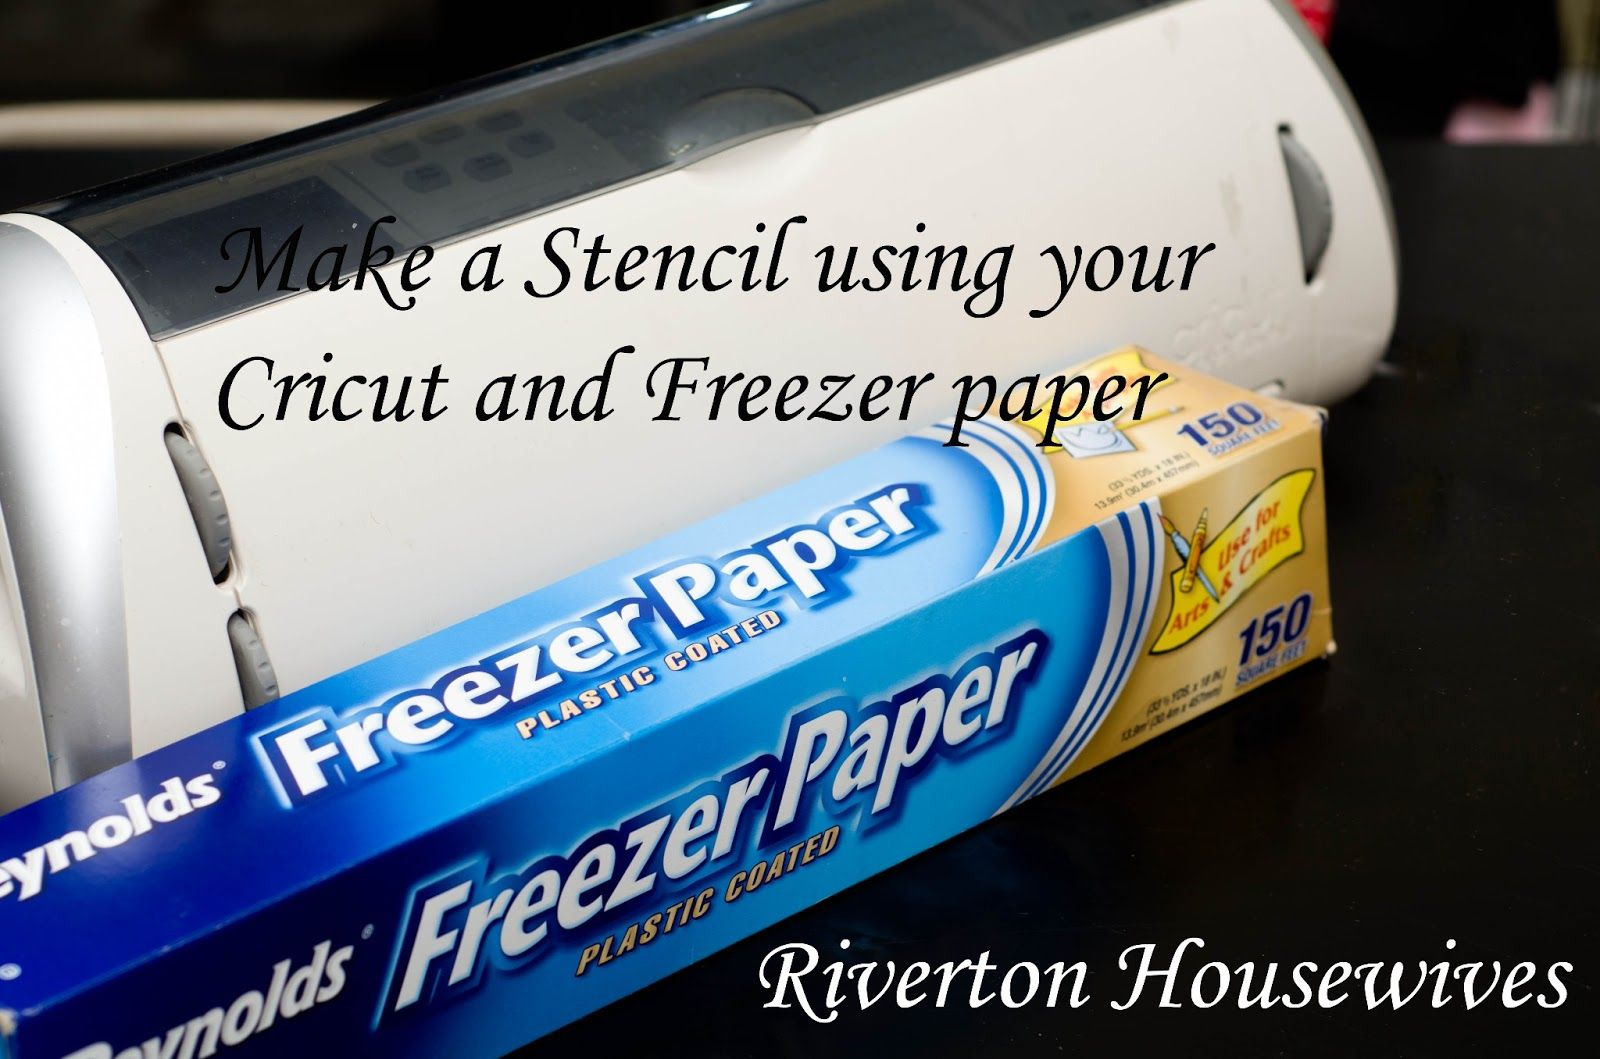 Cut Freezer Paper with your Cricut Expression | Cricut